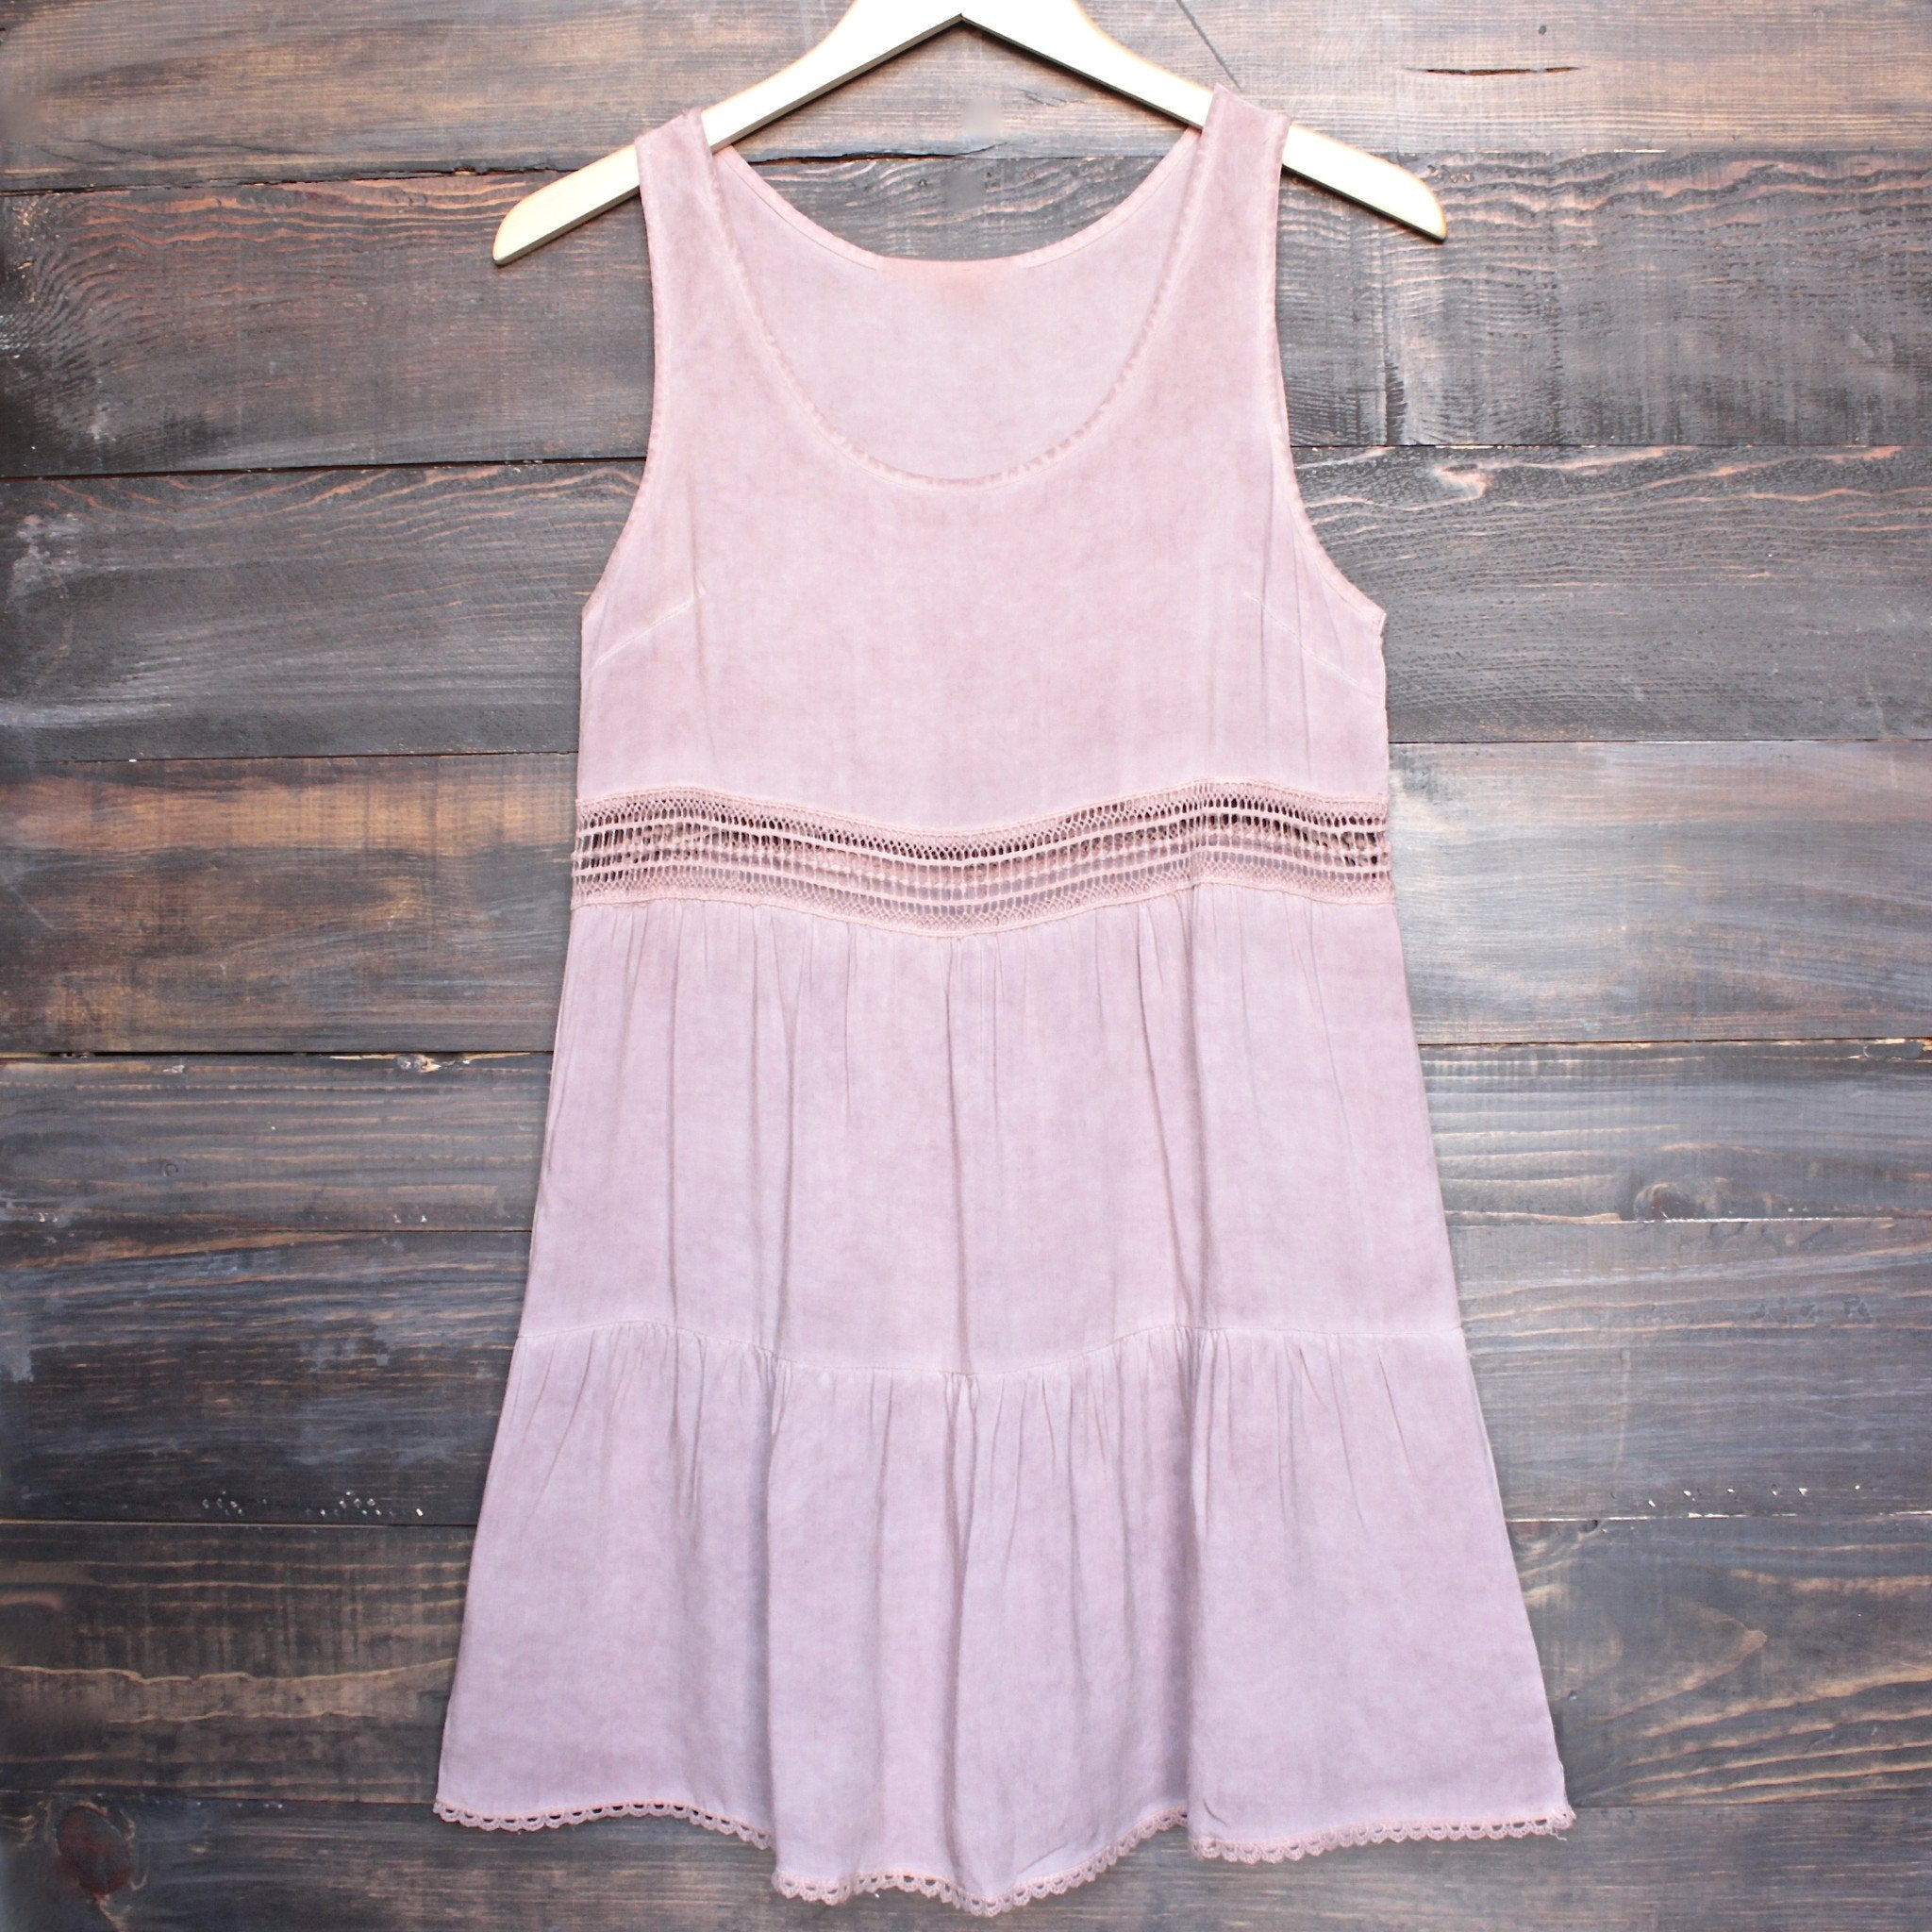 boho acid wash flowy tunic dress with crochet inset in pink - shophearts